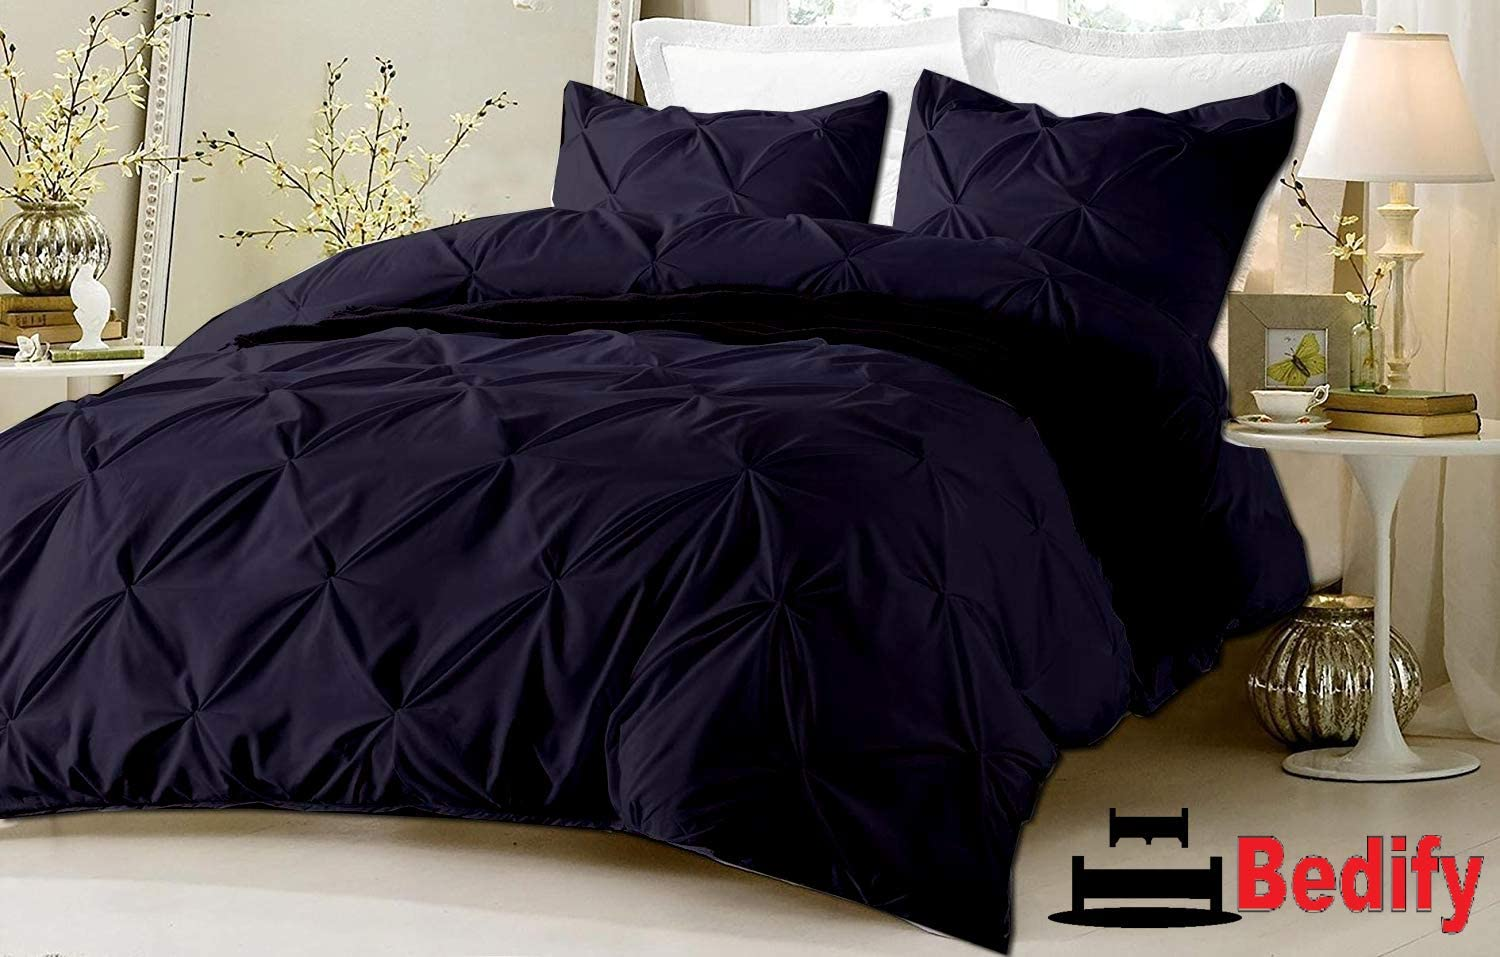 Bedify Soft Finish Long Staple 100% Organic Cotton 800-Tc Hypoallergenic Design & Fade Resistant 68X90 Twin/Twin XL Size 5pc Pinch Pleated Duvet Cover Set with Button Closure Navy Blue Solid